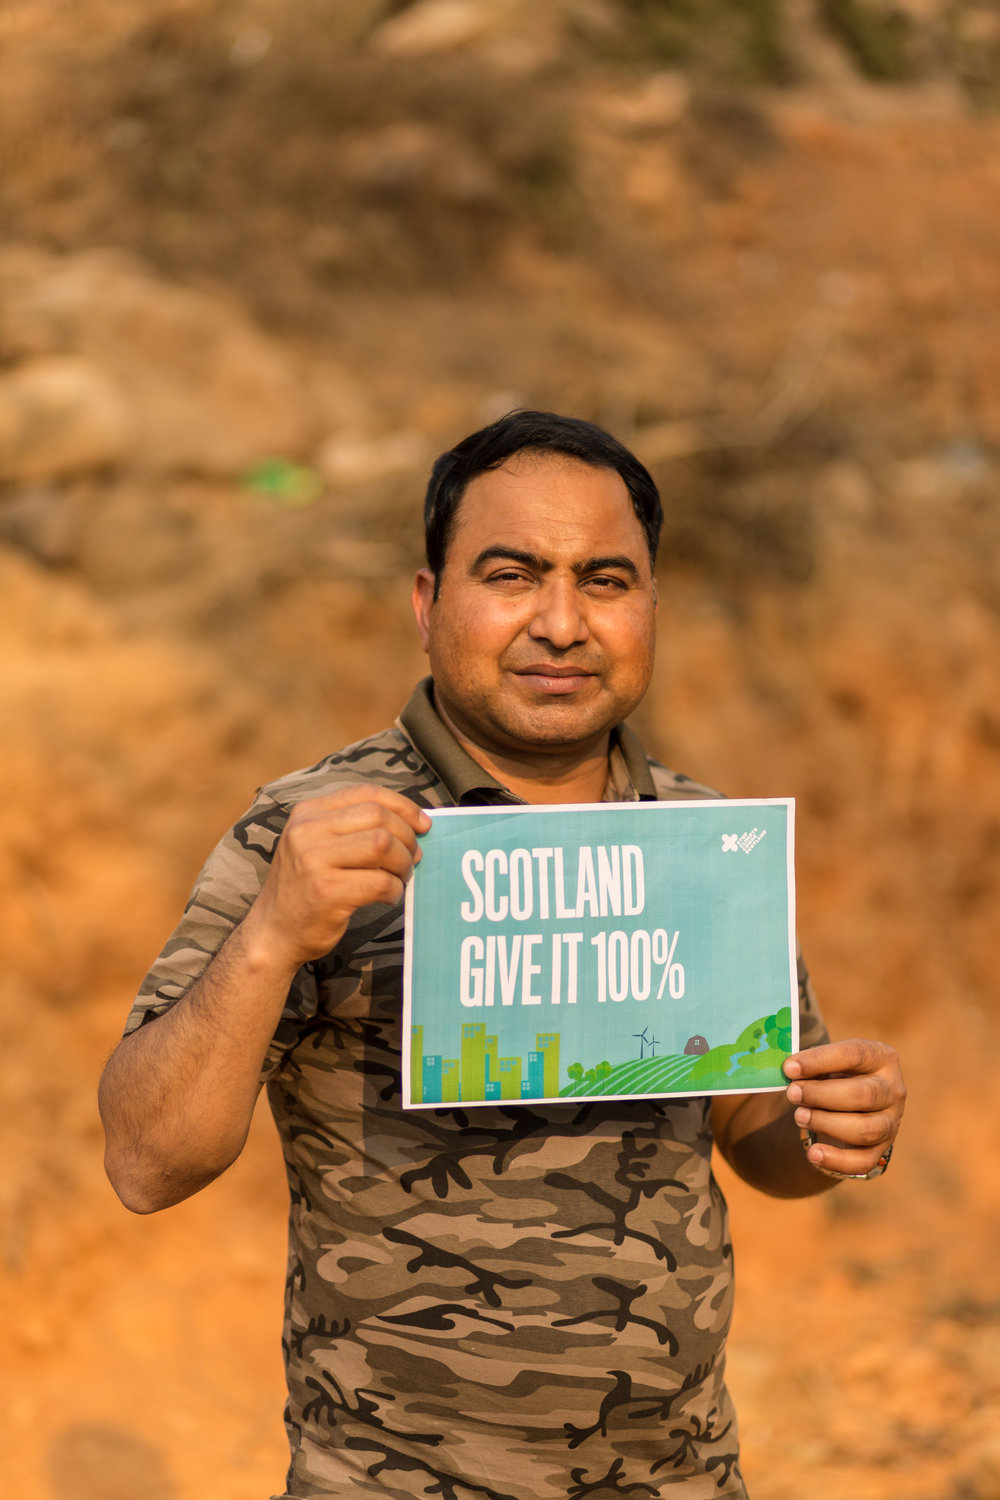 """TODAY NEPALESE COMMUNITIES ARE FACING THE VERY WORSE IMPACTS OF CLIMATE CHANGE, AMBITIOUS CLIMATE ACTION IN SCOTLAND WILL HELP ADDRESS THE CHALLENGES WE FACE NOW AND IN THE FUTURE""    BINOD GHIMIRE, NEPAL   Photograpgy by Chris Hoskins, Tearfund"